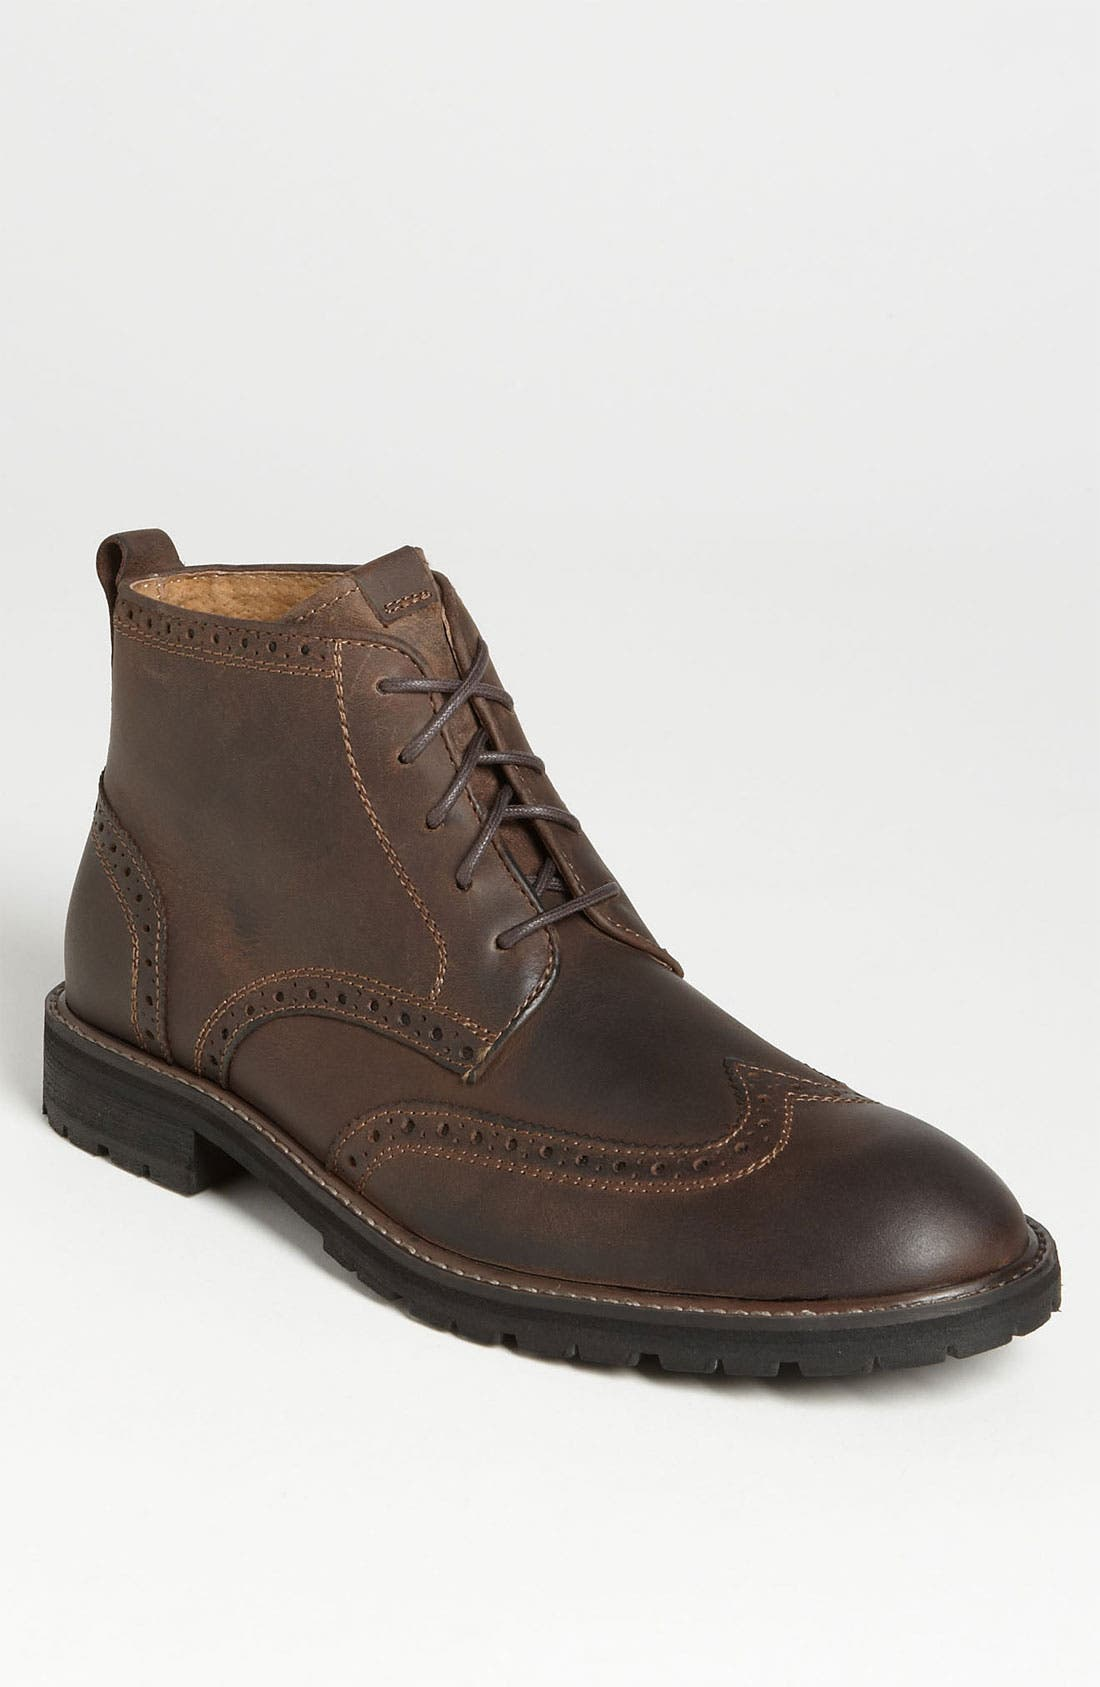 Alternate Image 1 Selected - Florsheim 'Gaffney' Wingtip Boot